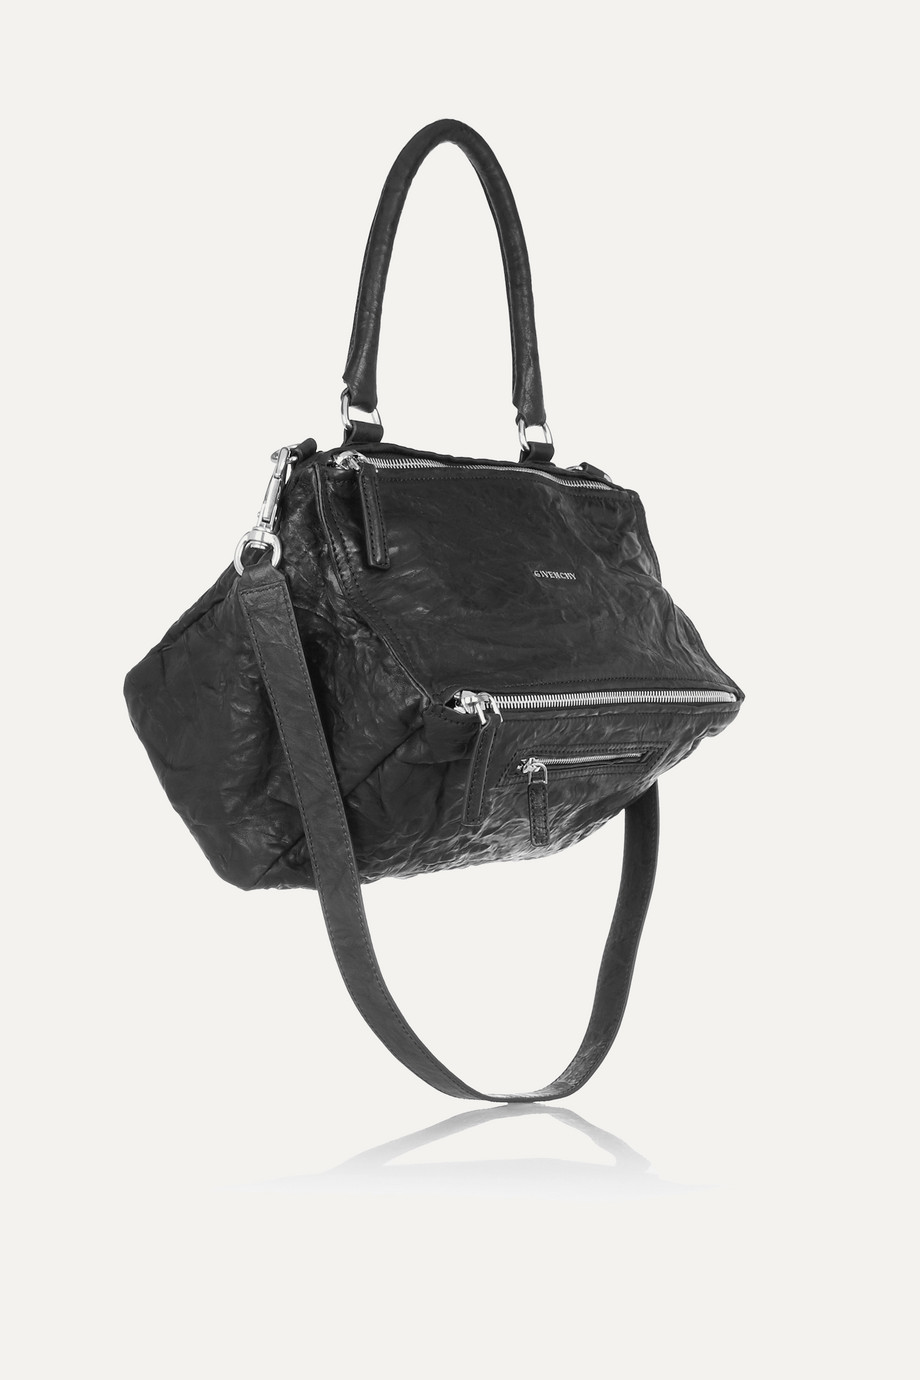 Givenchy Medium Pandora Bag in Washed-Leather, Black, Women's, Size: One Size